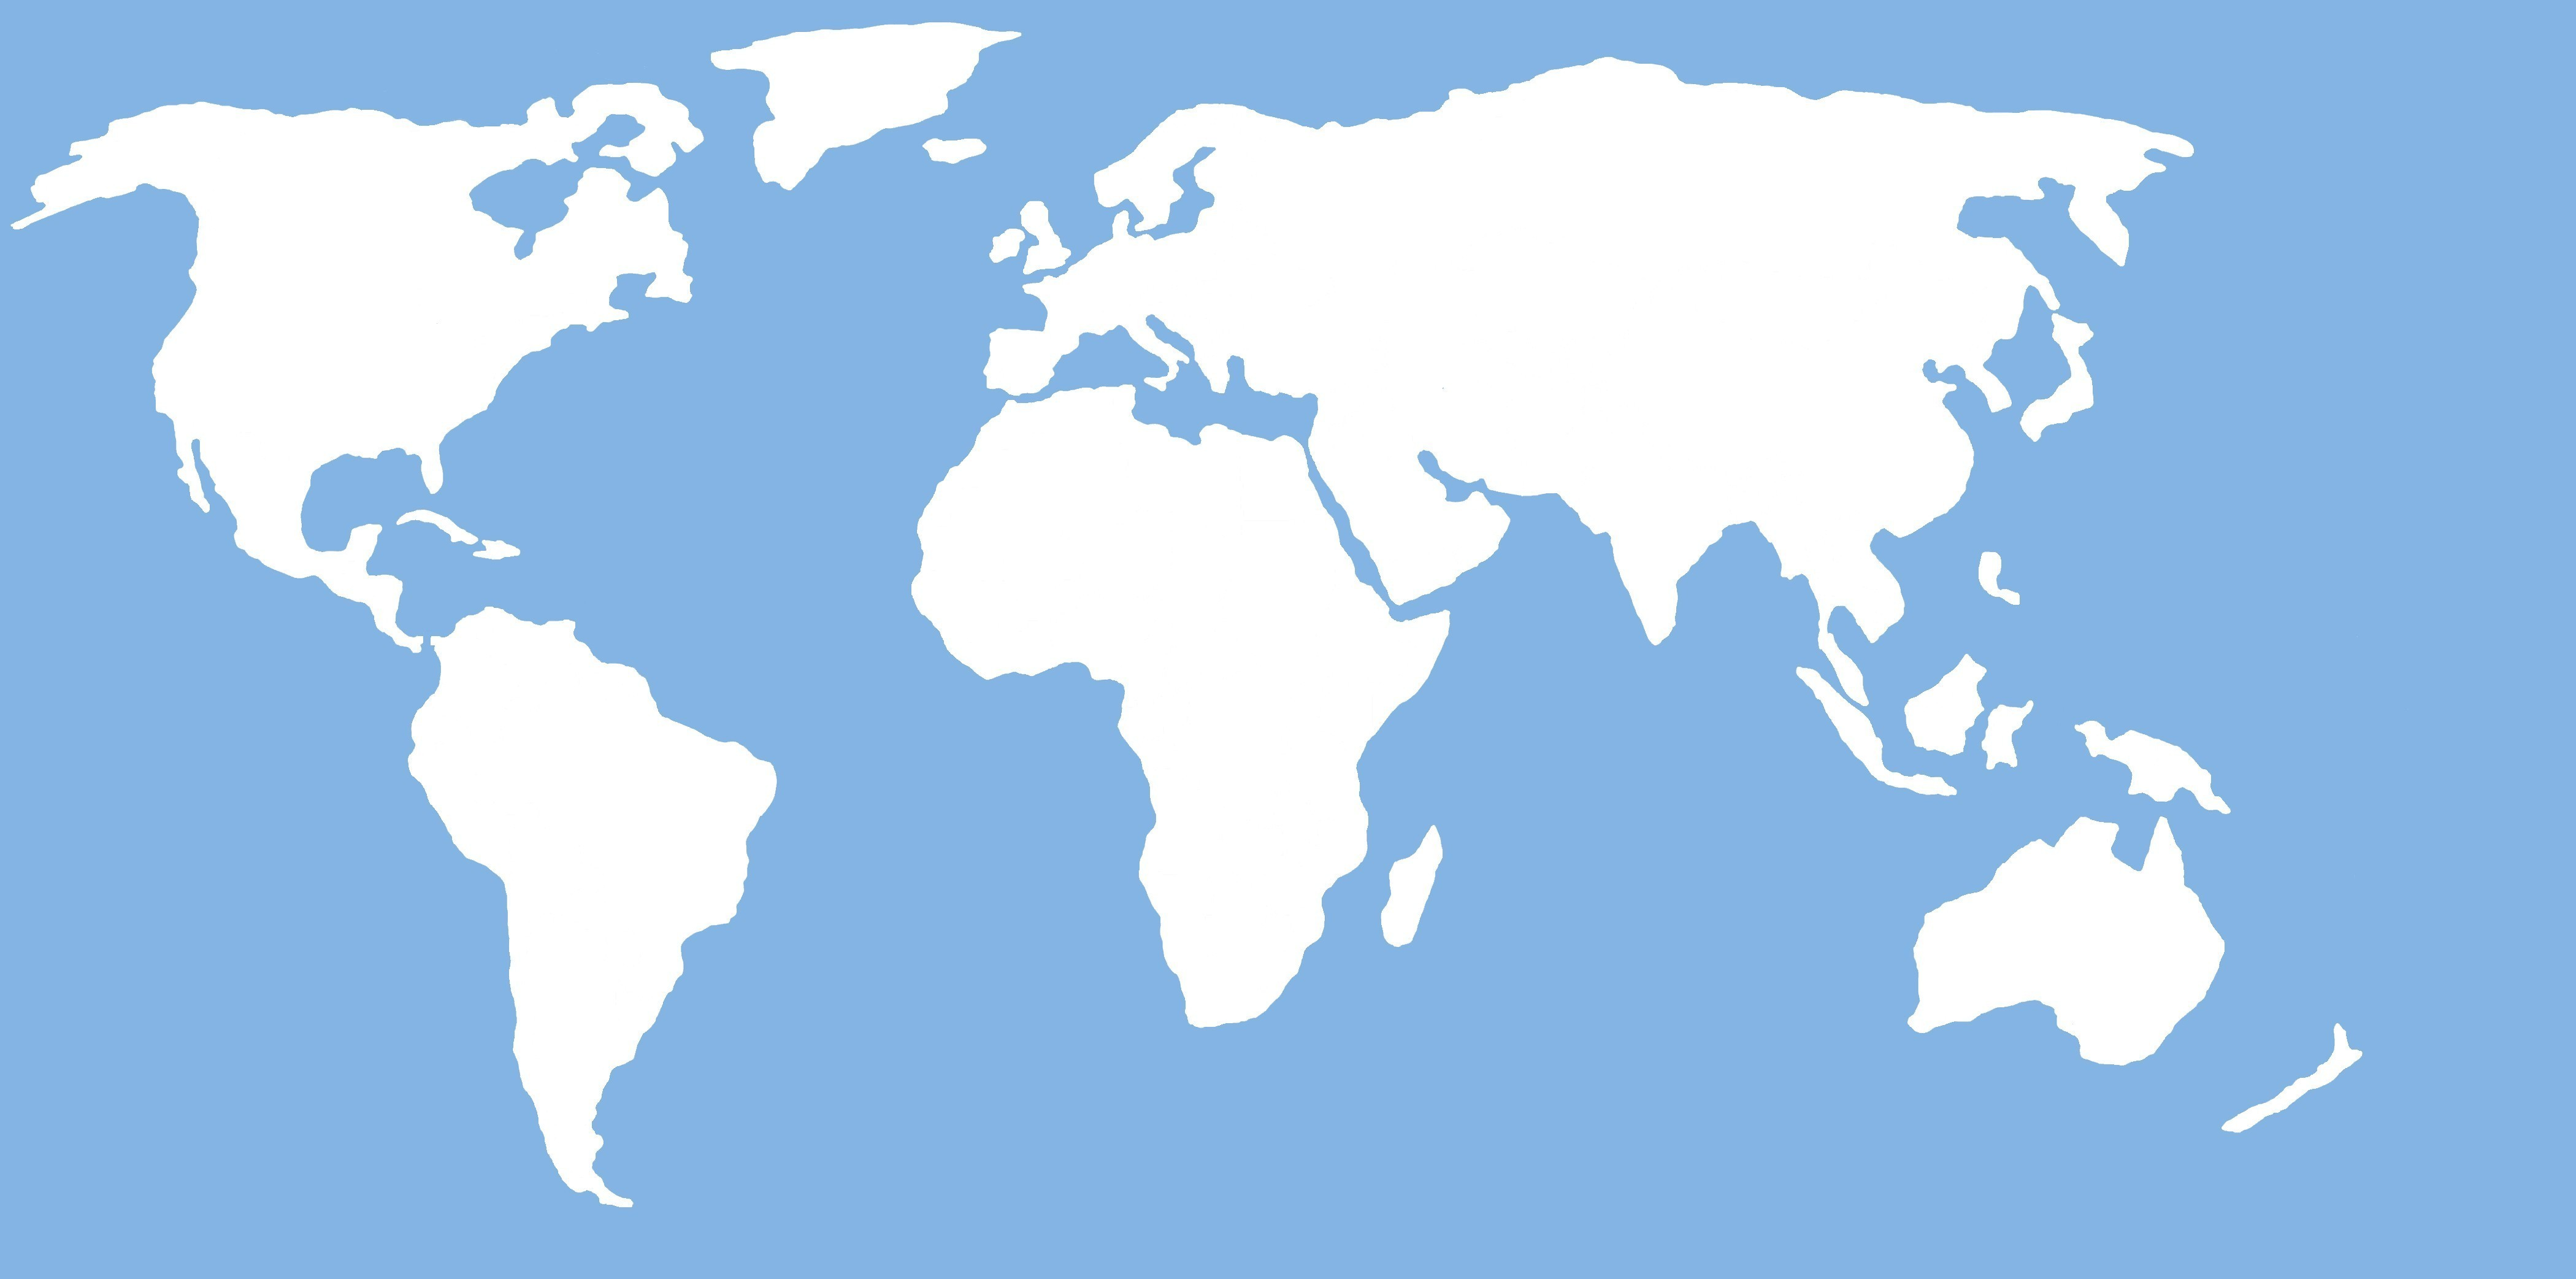 Free photo: World Map Clipart.